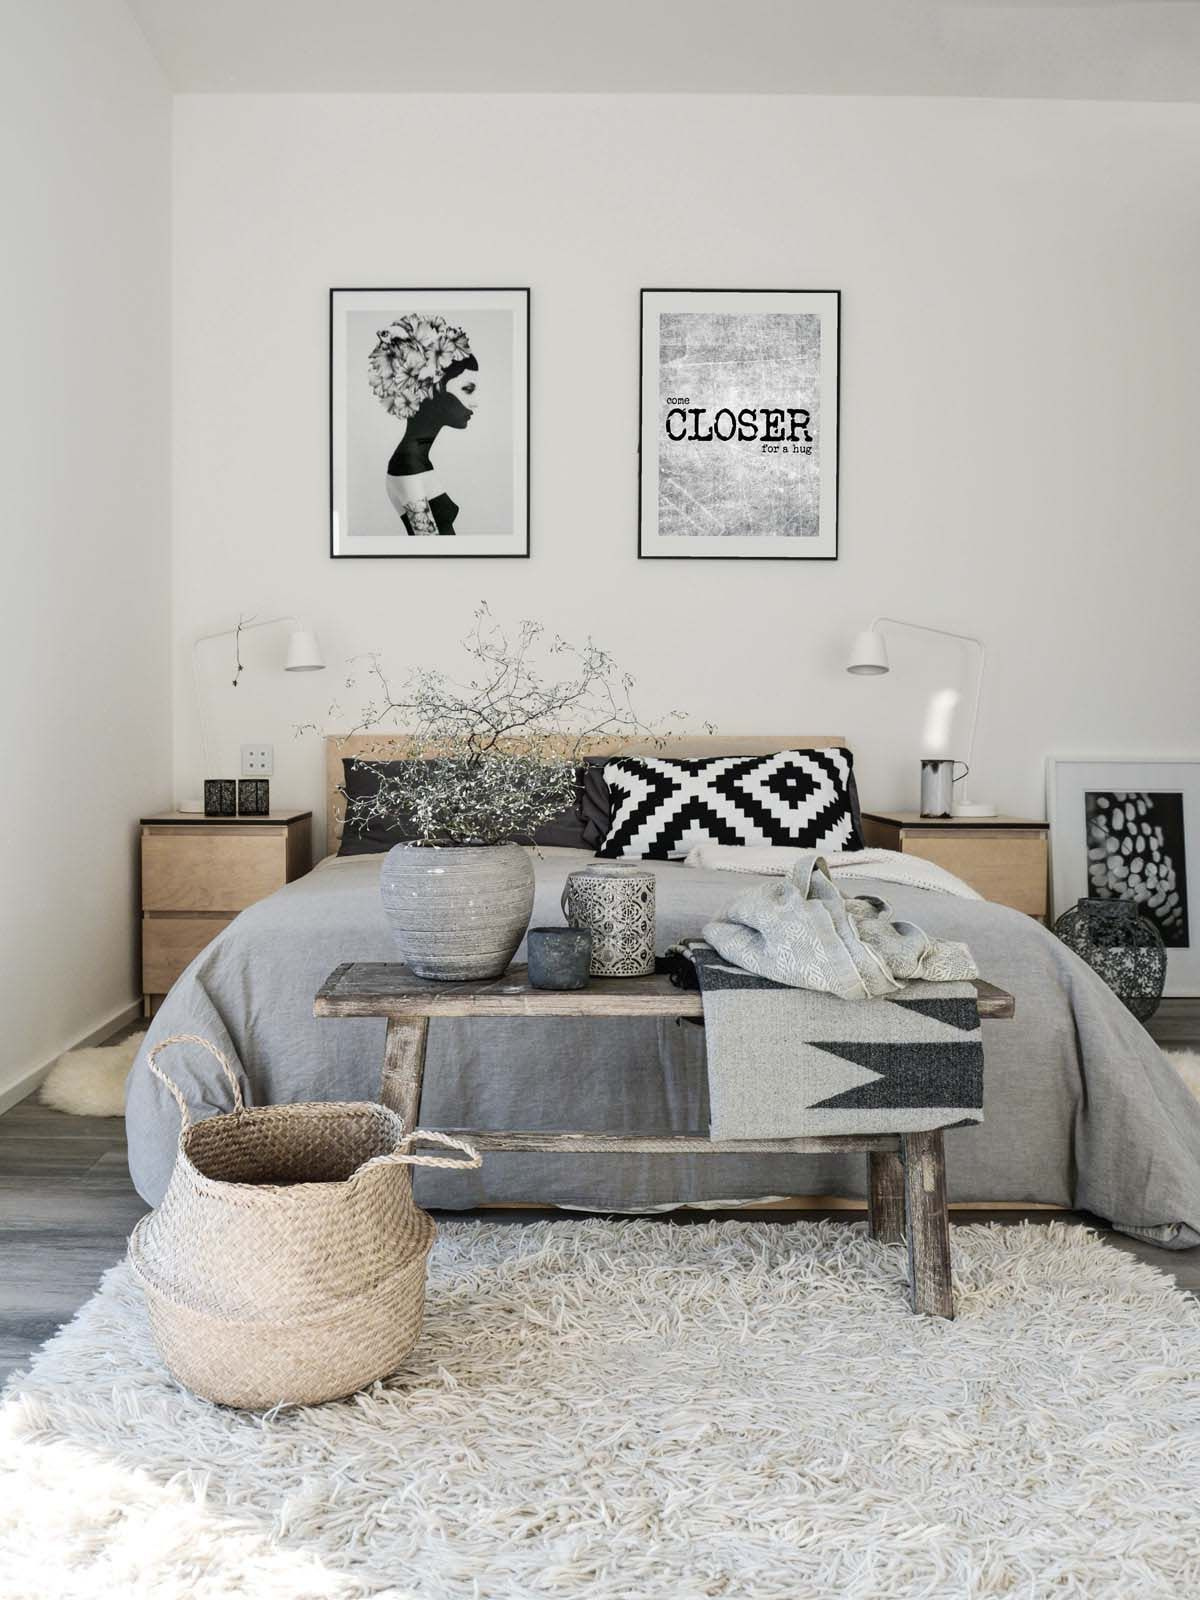 45 Scandinavian Bedroom Ideas That Are Modern And Stylish Bedroom Design Trends Scandinavian Design Bedroom Bedroom Interior